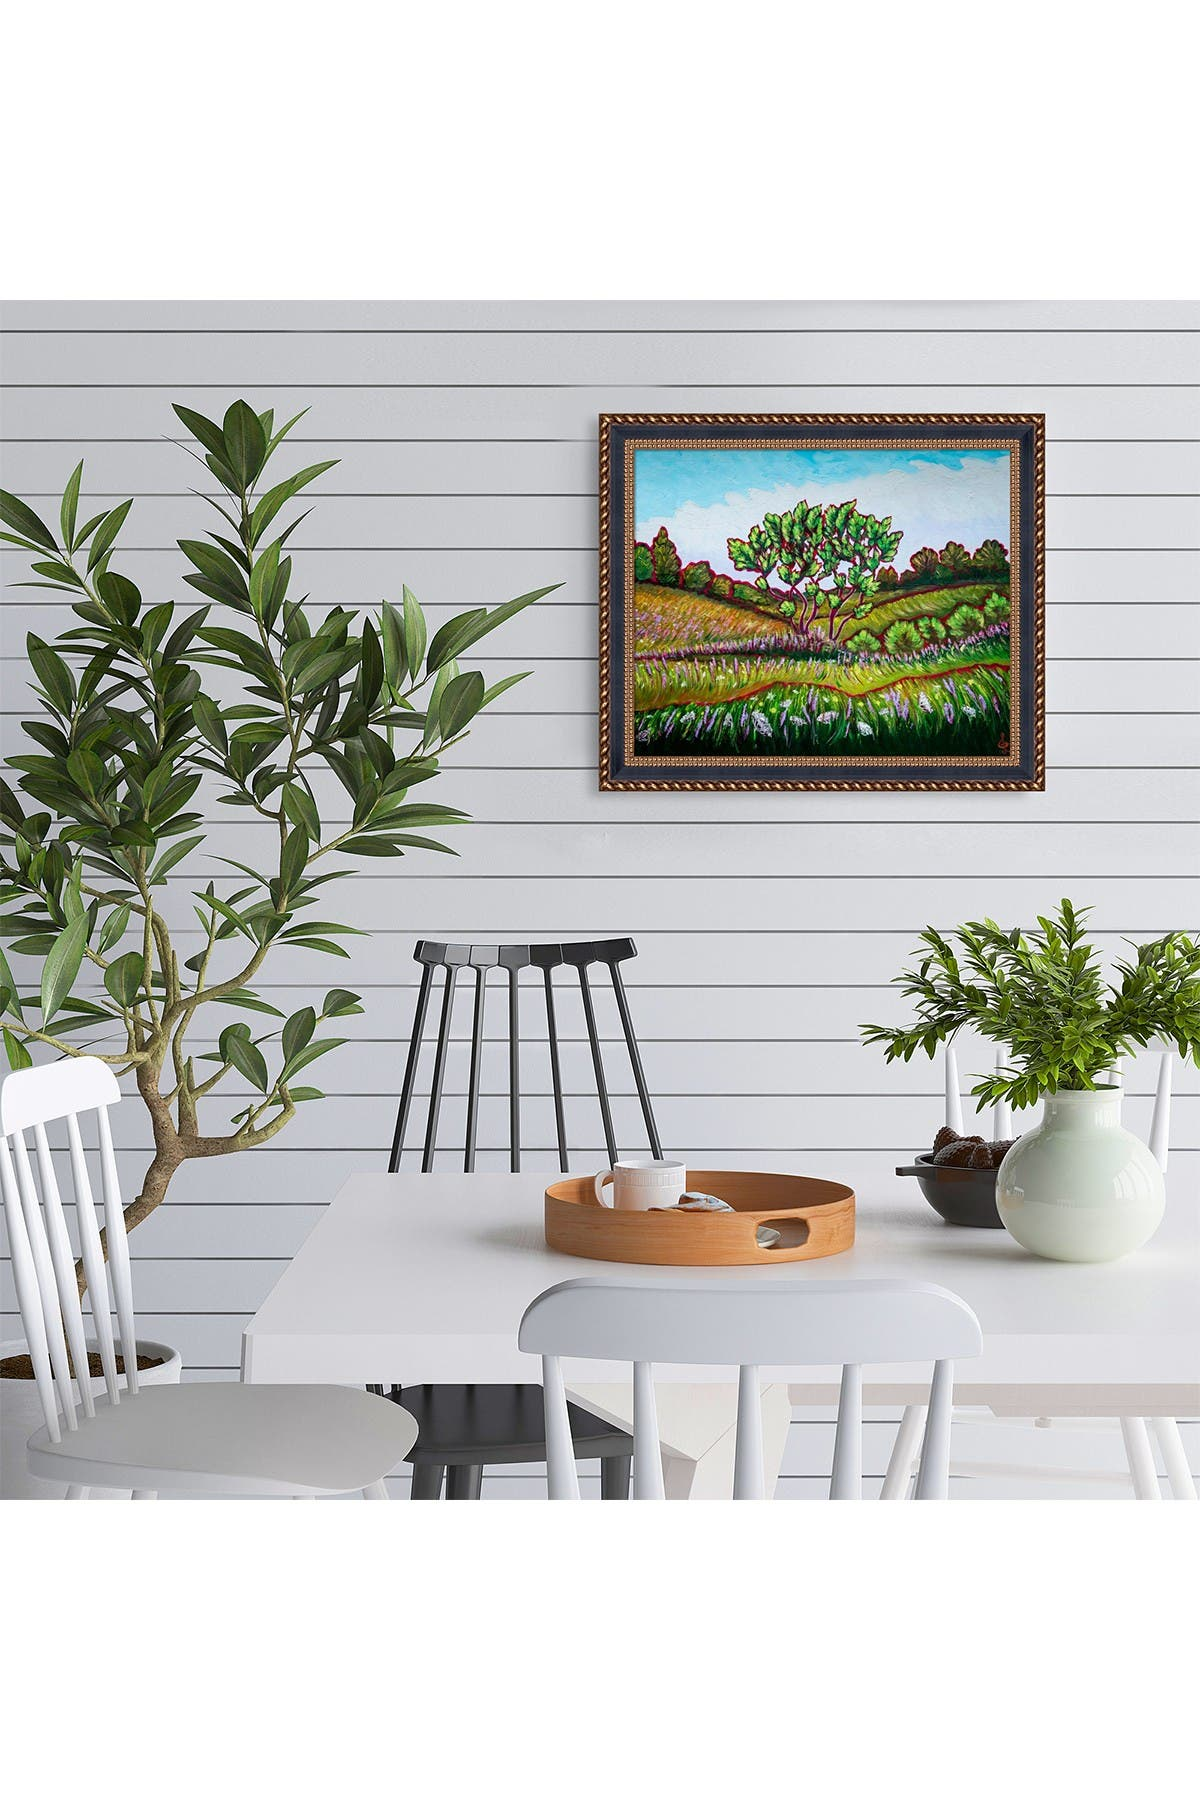 """Image of Overstock Art Summer Meadow with Verona Black and Gold Braid Frame - 24.75"""" x 28.75"""""""